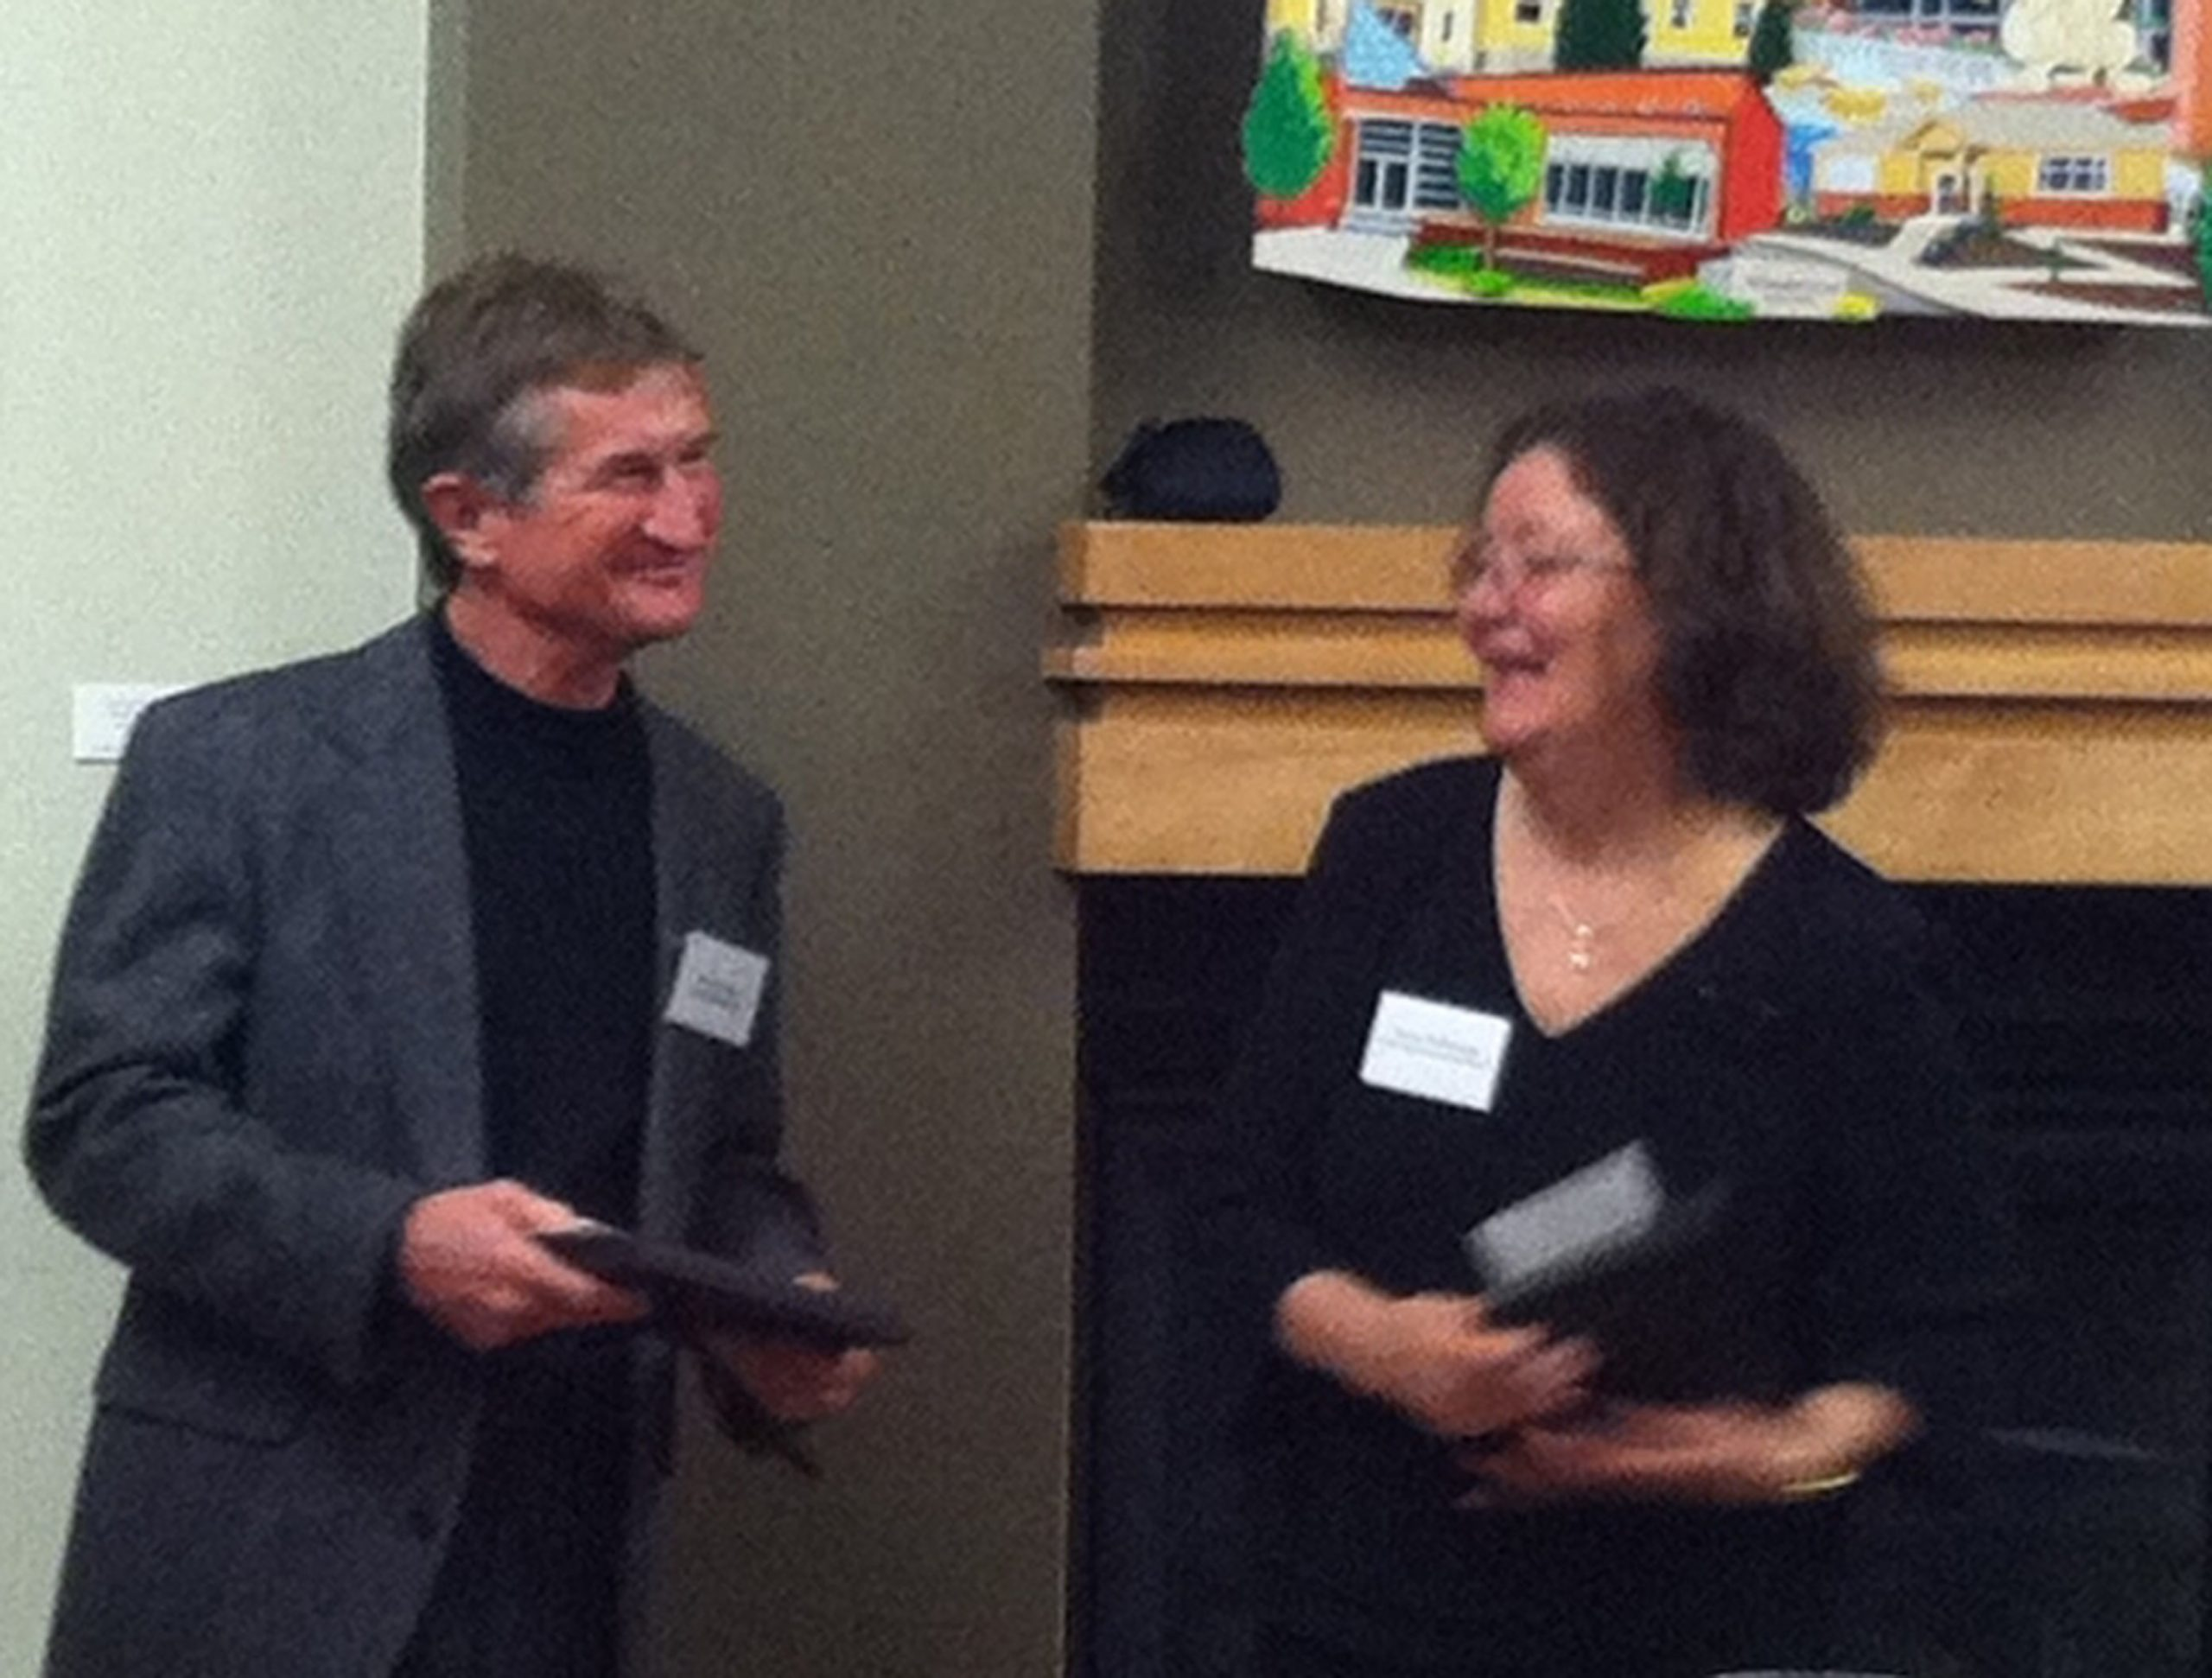 Steven Simms accepting the award from Ronni McDonough, co-chair of the Utah Book Award.